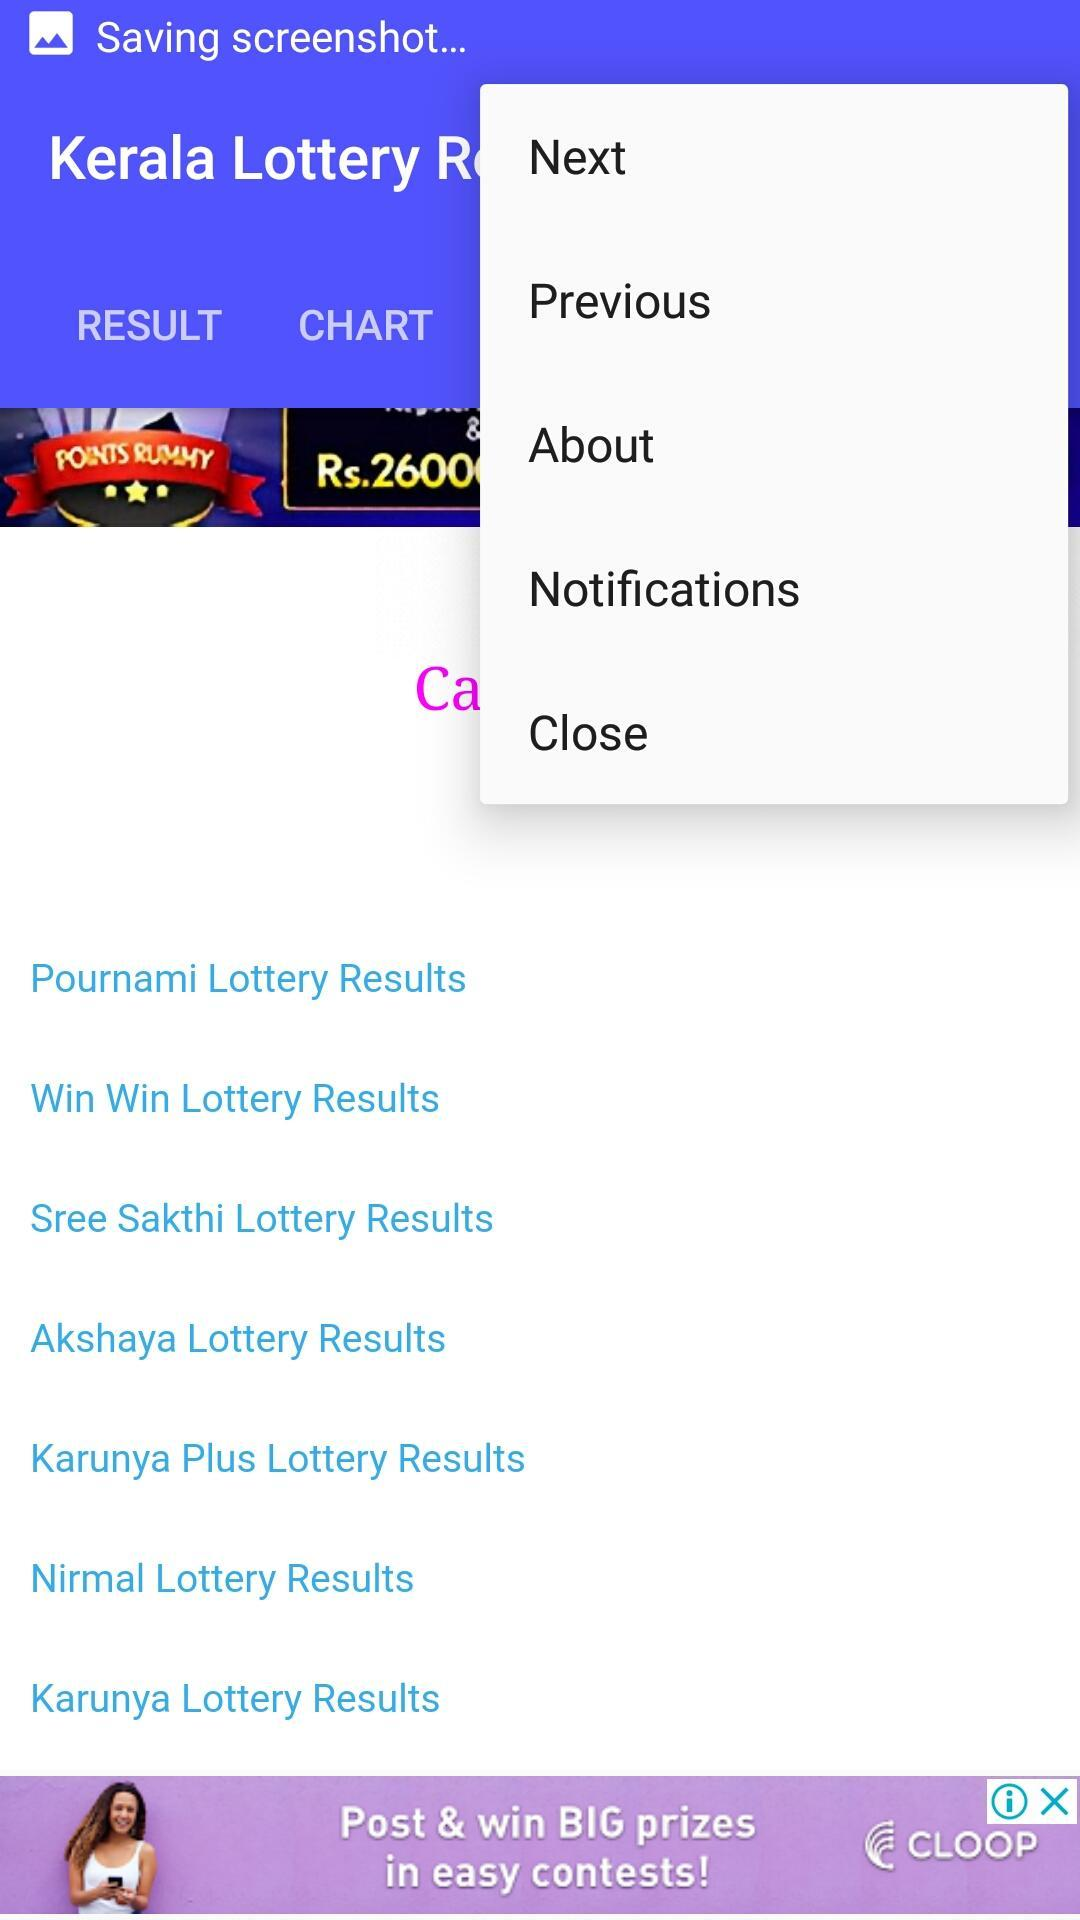 Kerala Lottery Result for Android - APK Download